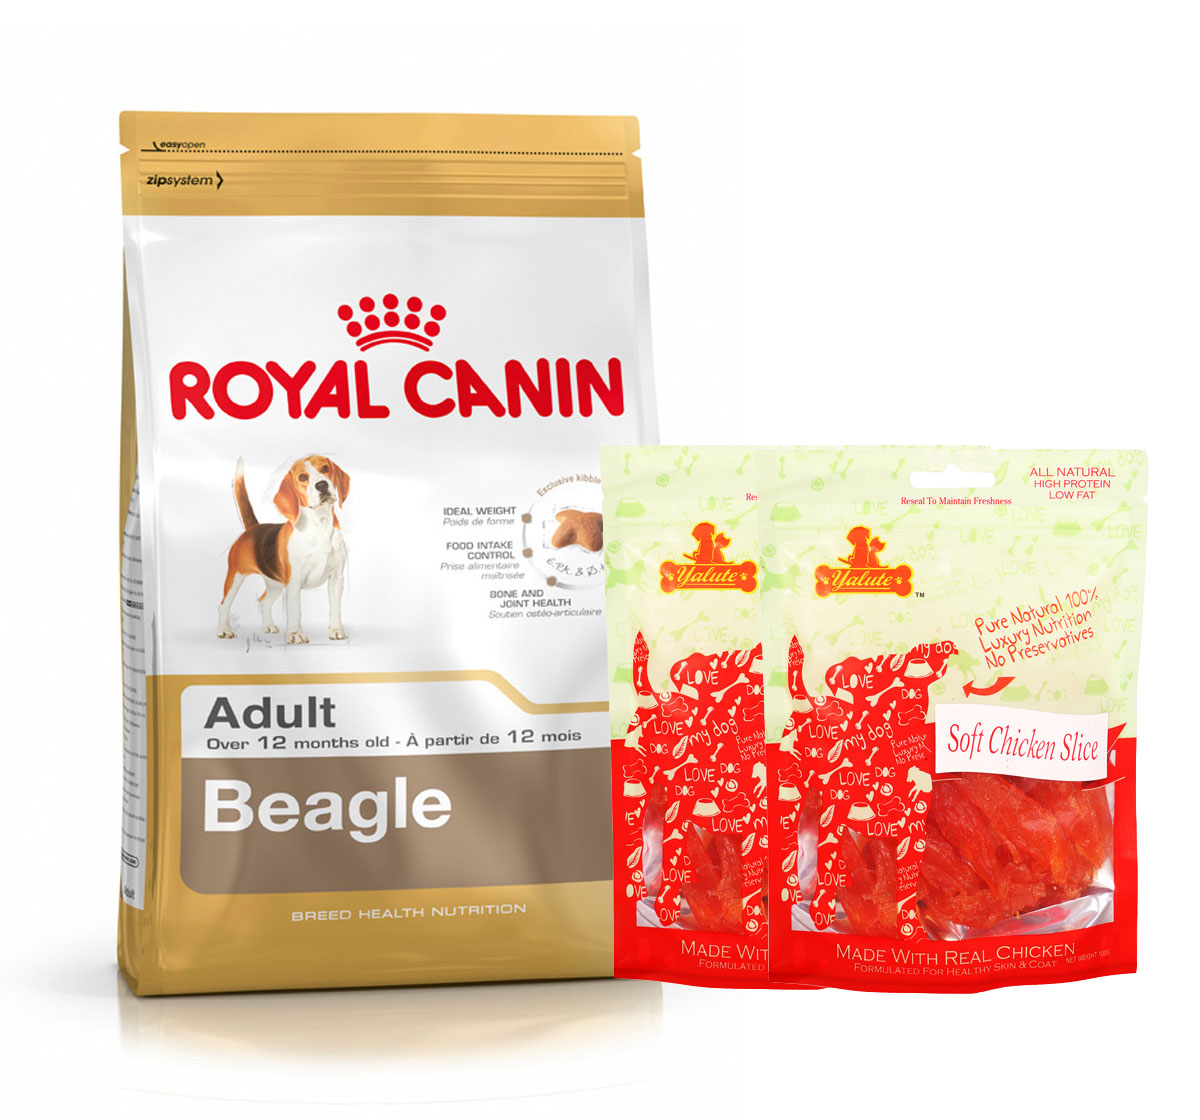 Royal Canin Beagle Adult - 3 Kg  With Chicken Slices